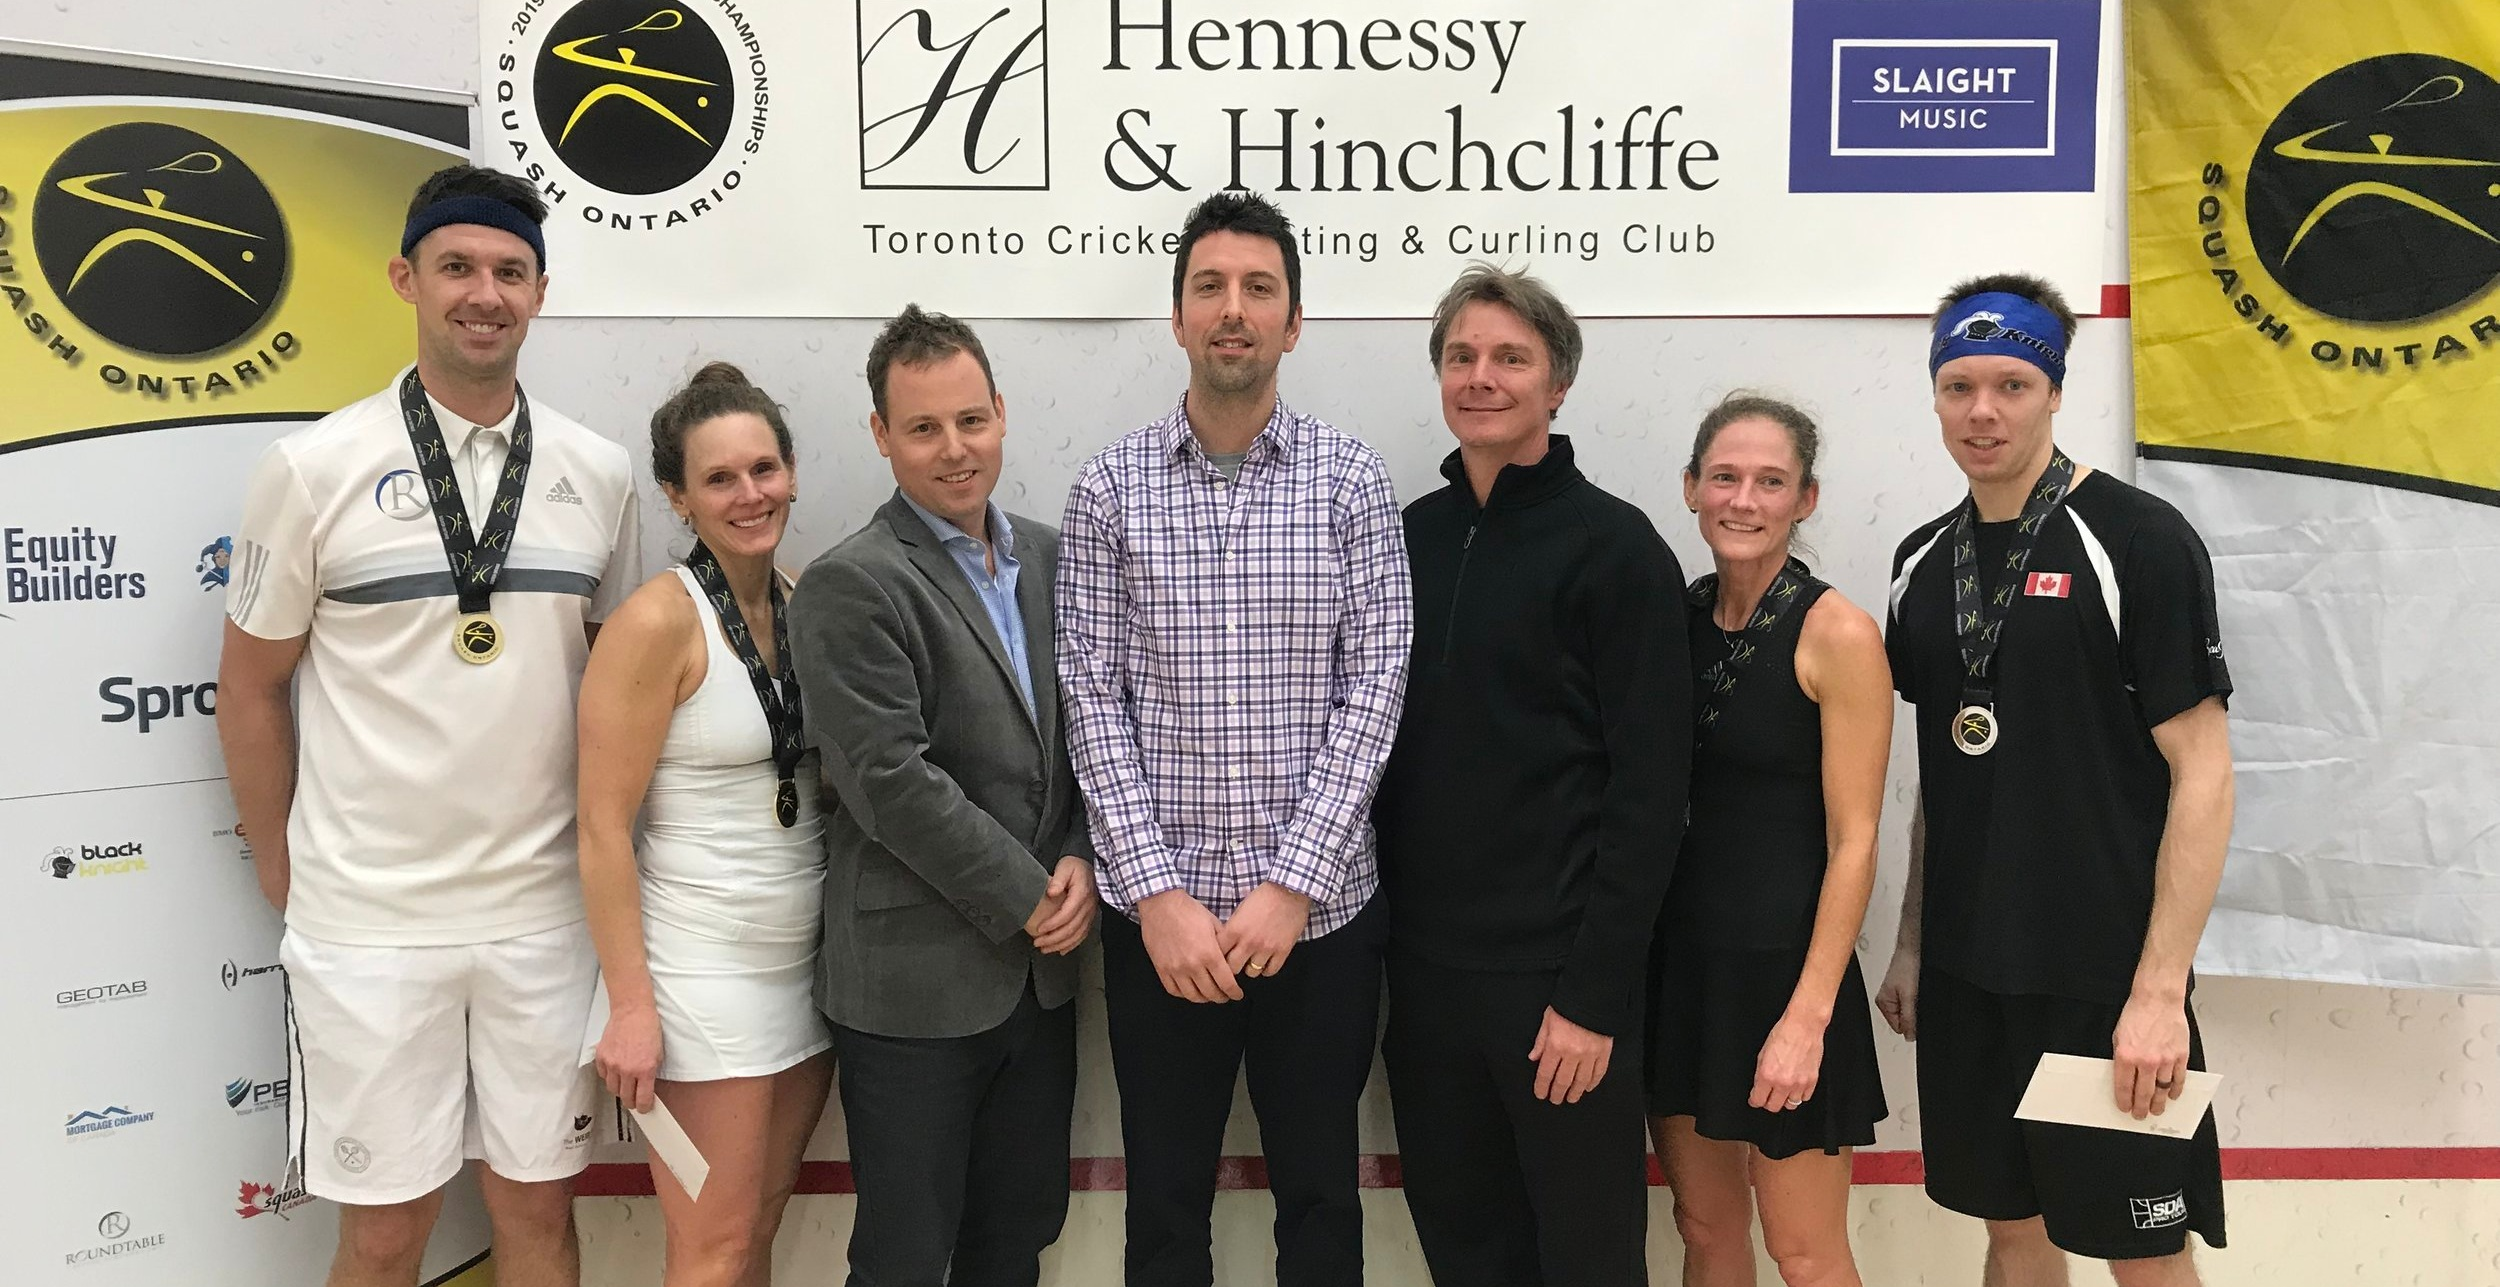 Left to right: Mixed Open Champions Scott Arnold and Seanna Keating, Squash Ontario Executive Director Jamie Nicholls, Tournament Chair Robin Clarke, Tournament Referee Mark Warren, Finalists Stephanie Hewitt and Fred Reid. Front row: Maya Deratnay and Georgia Baldwin.